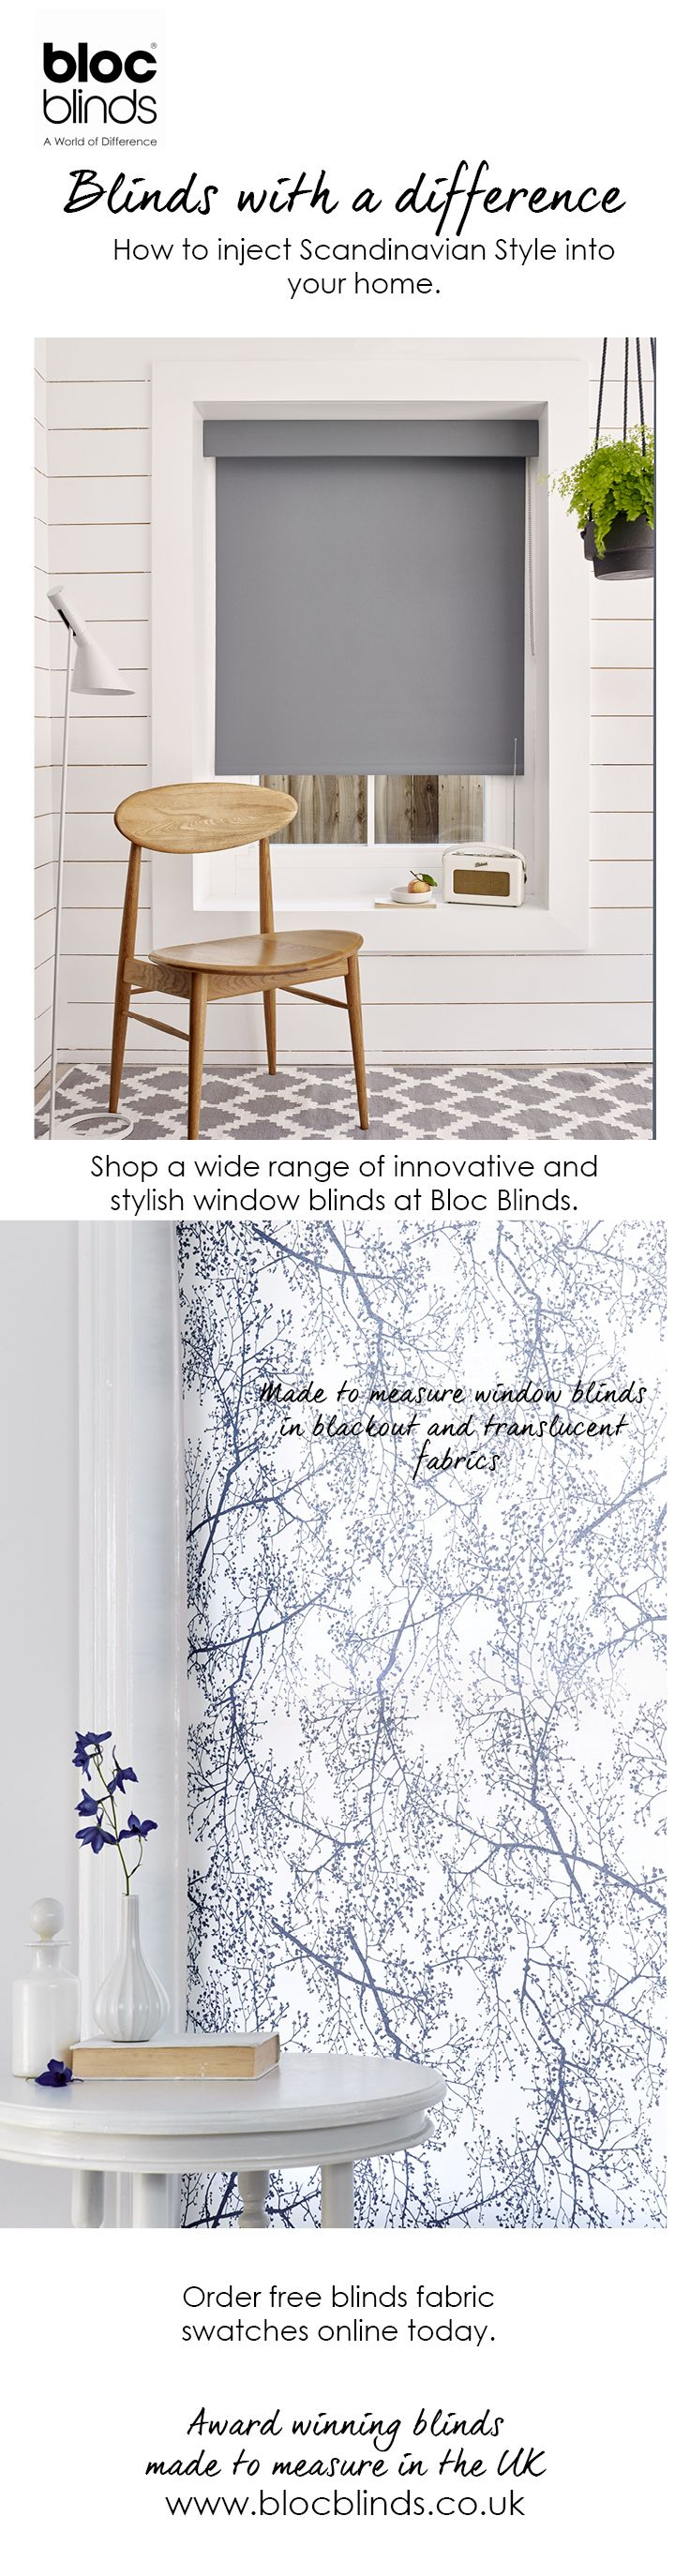 Chic and simple, the Scandi style is a staple in contemporary home decor. Bloc Blinds have a wide range of window dressing solutions allowing you to create your own  Nordic haven.